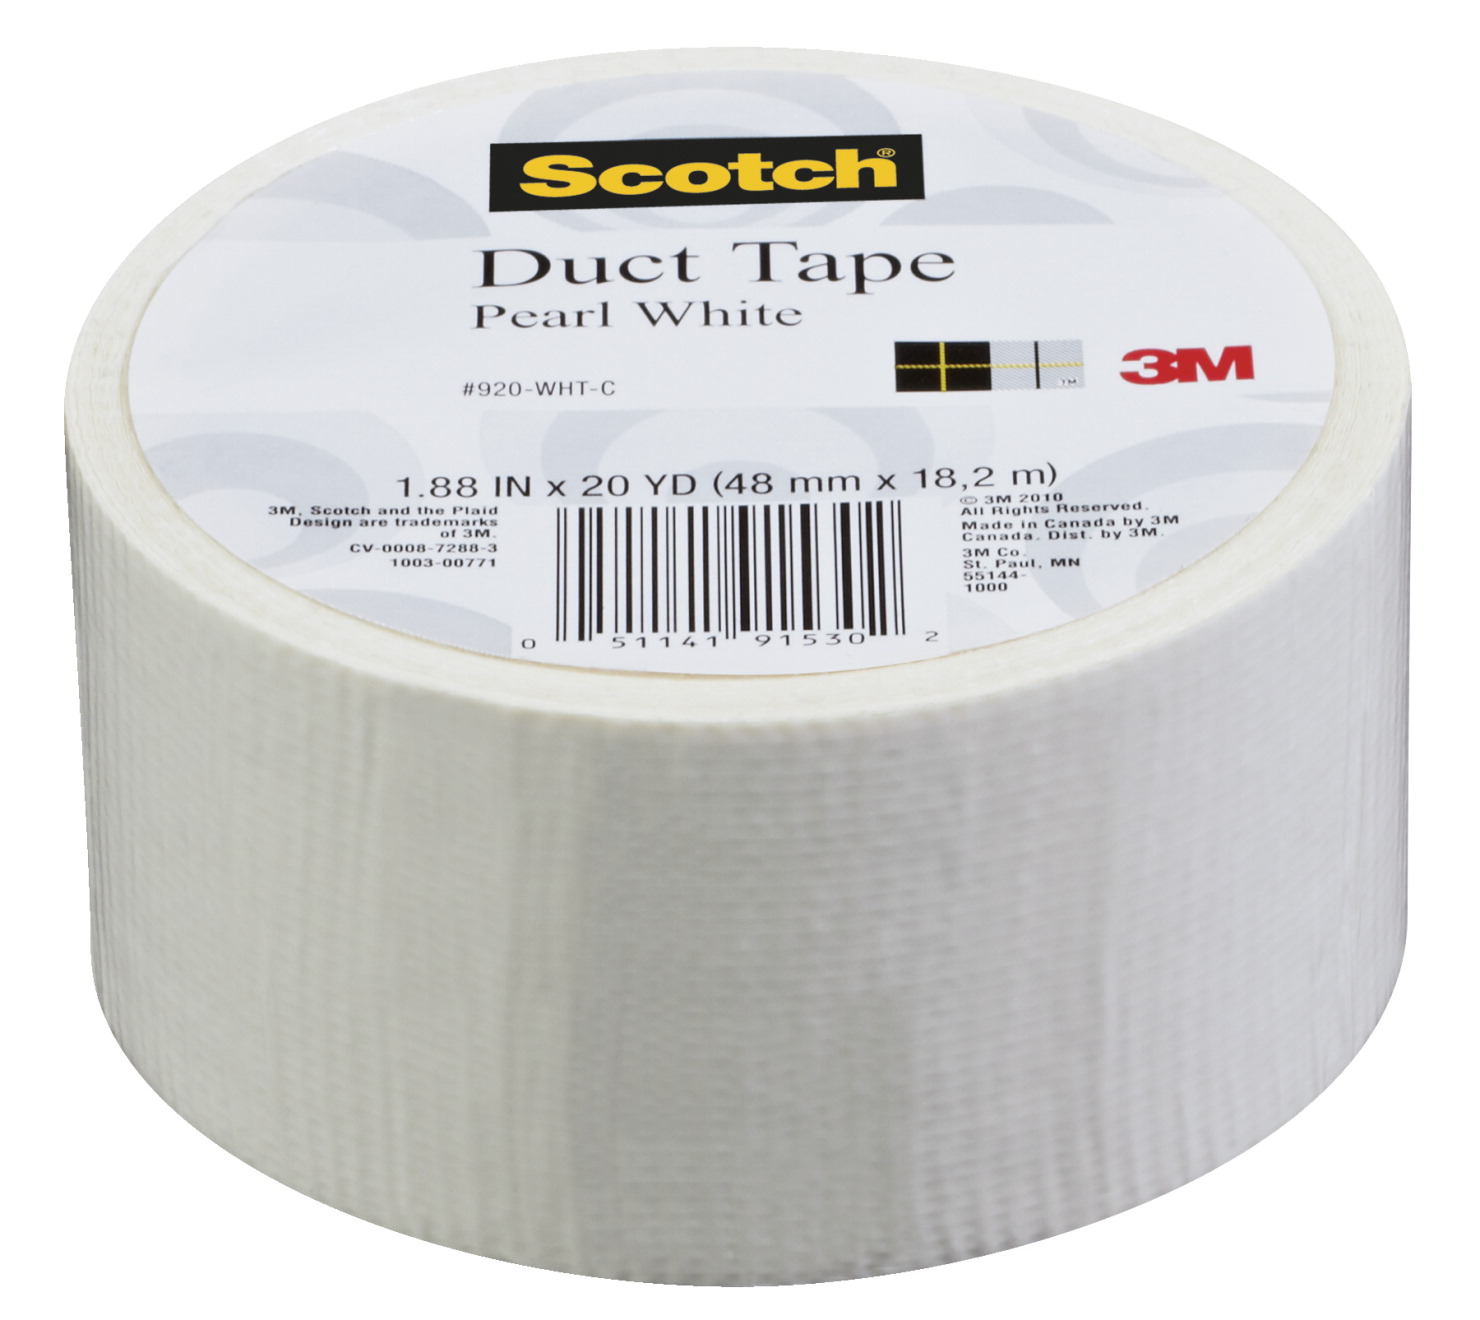 Scotch Duct Tape, 1.88 Inches x 20 Yards, Pearl White